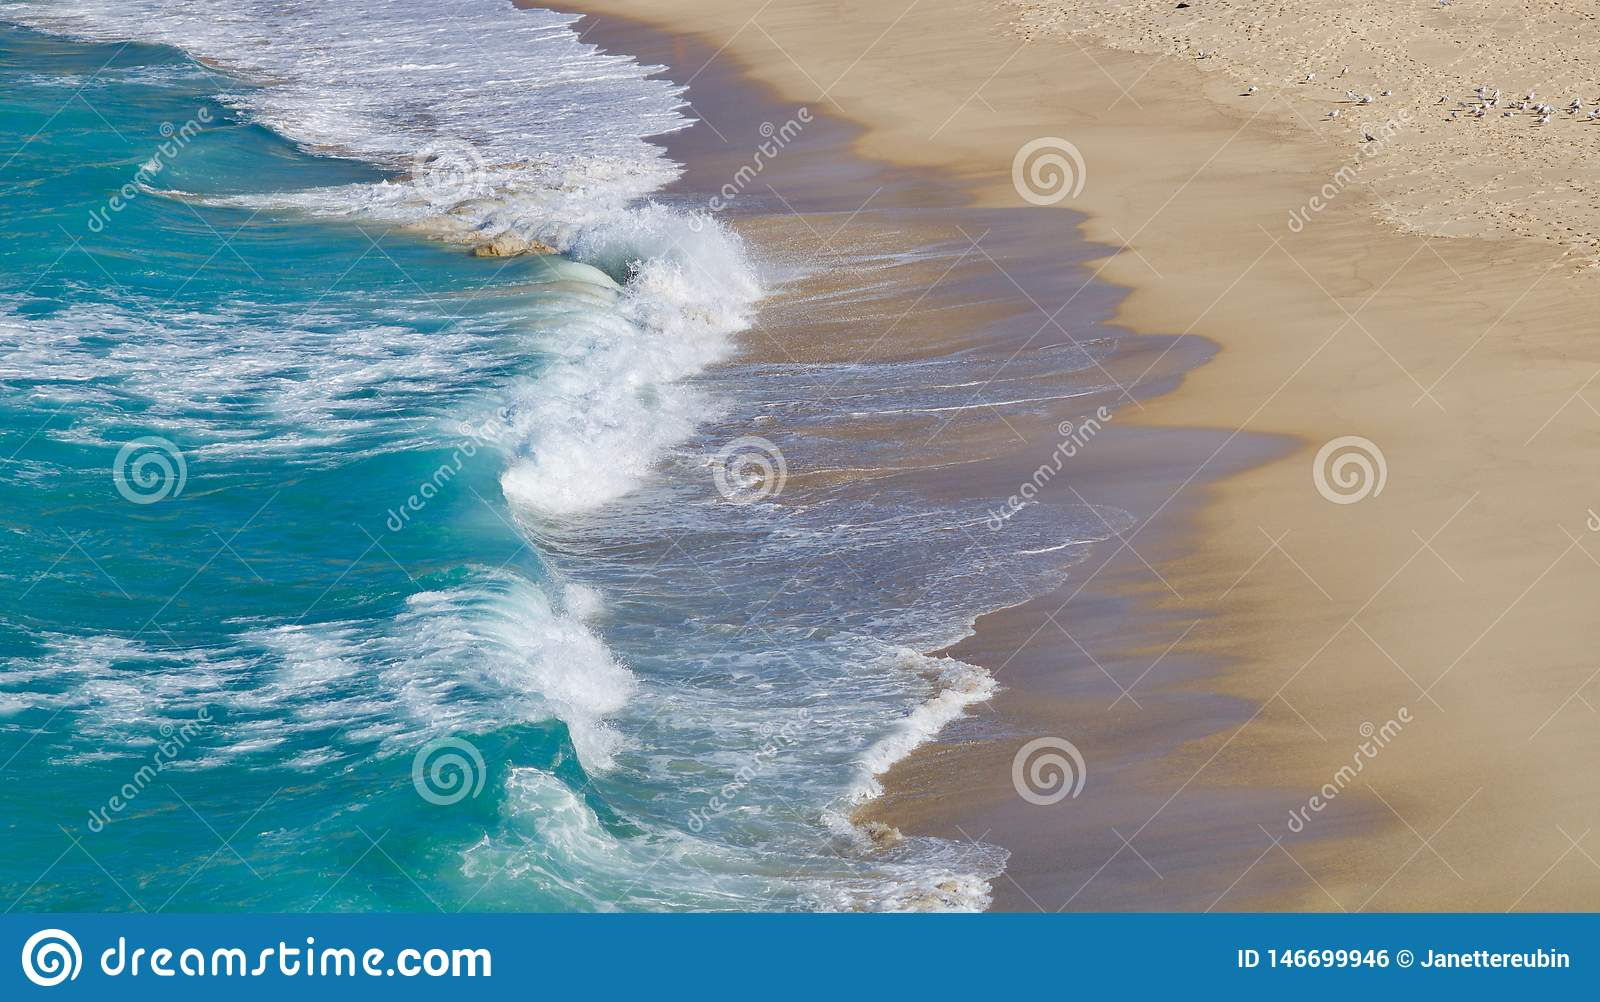 Waves lapping onto a sandy beach - image